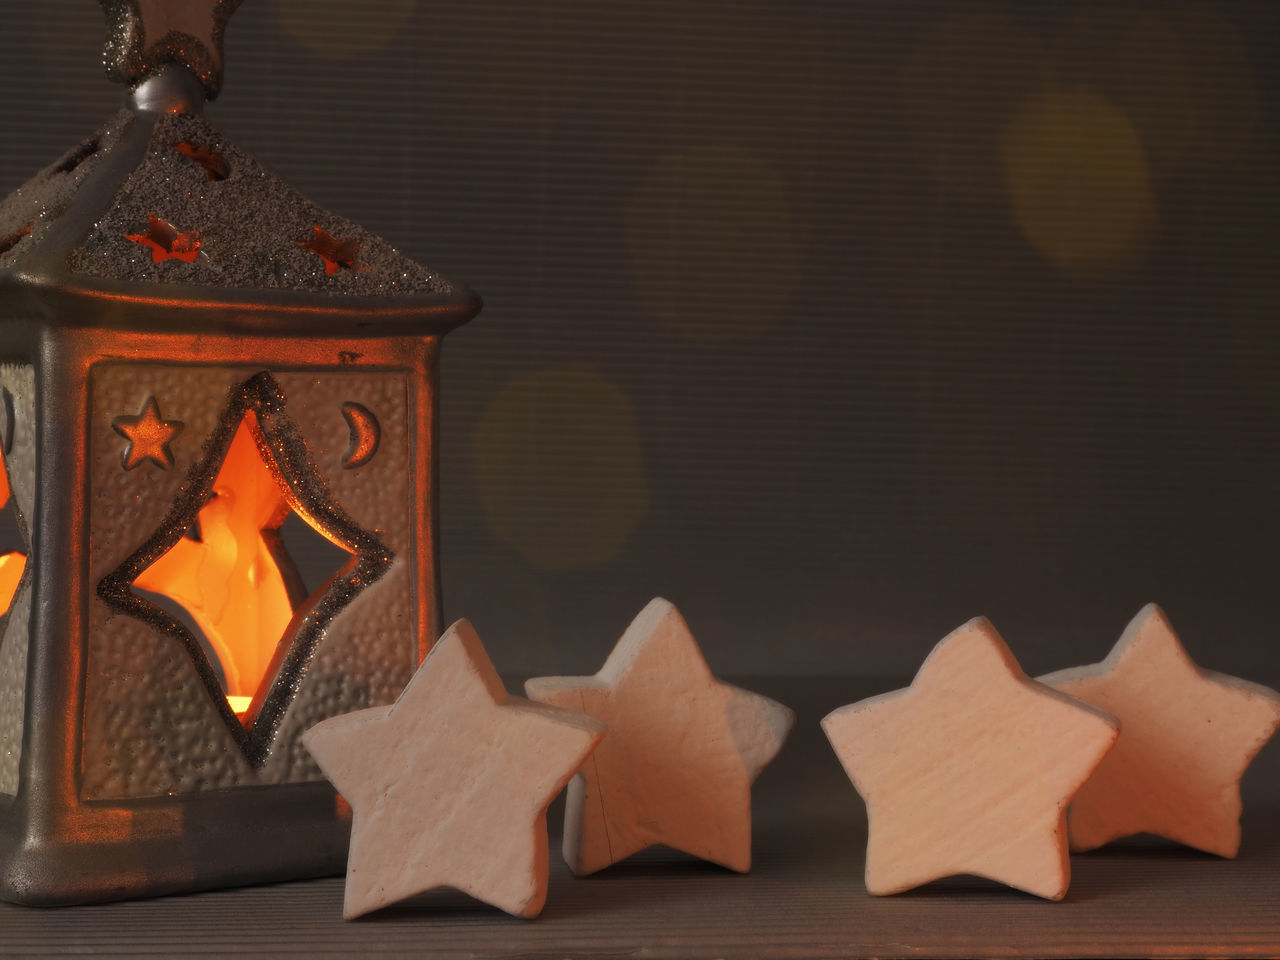 Romantic Christmas background Burning Candle Light Candles Christmas Close-up Day Flame Indoors  No People Stars Table